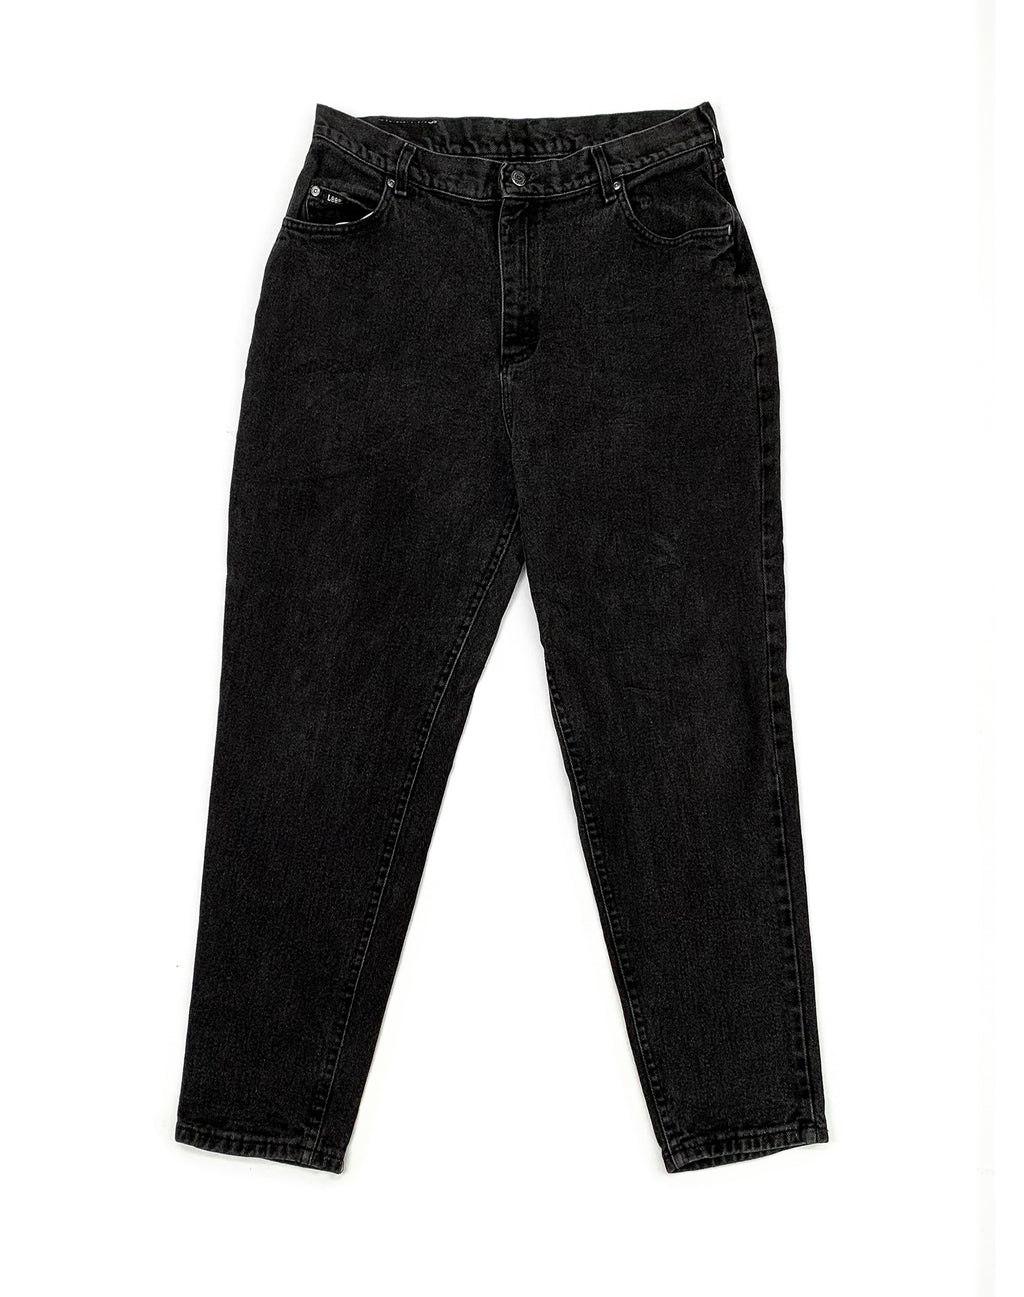 LEE WASHED BLACK DENIM JEANS